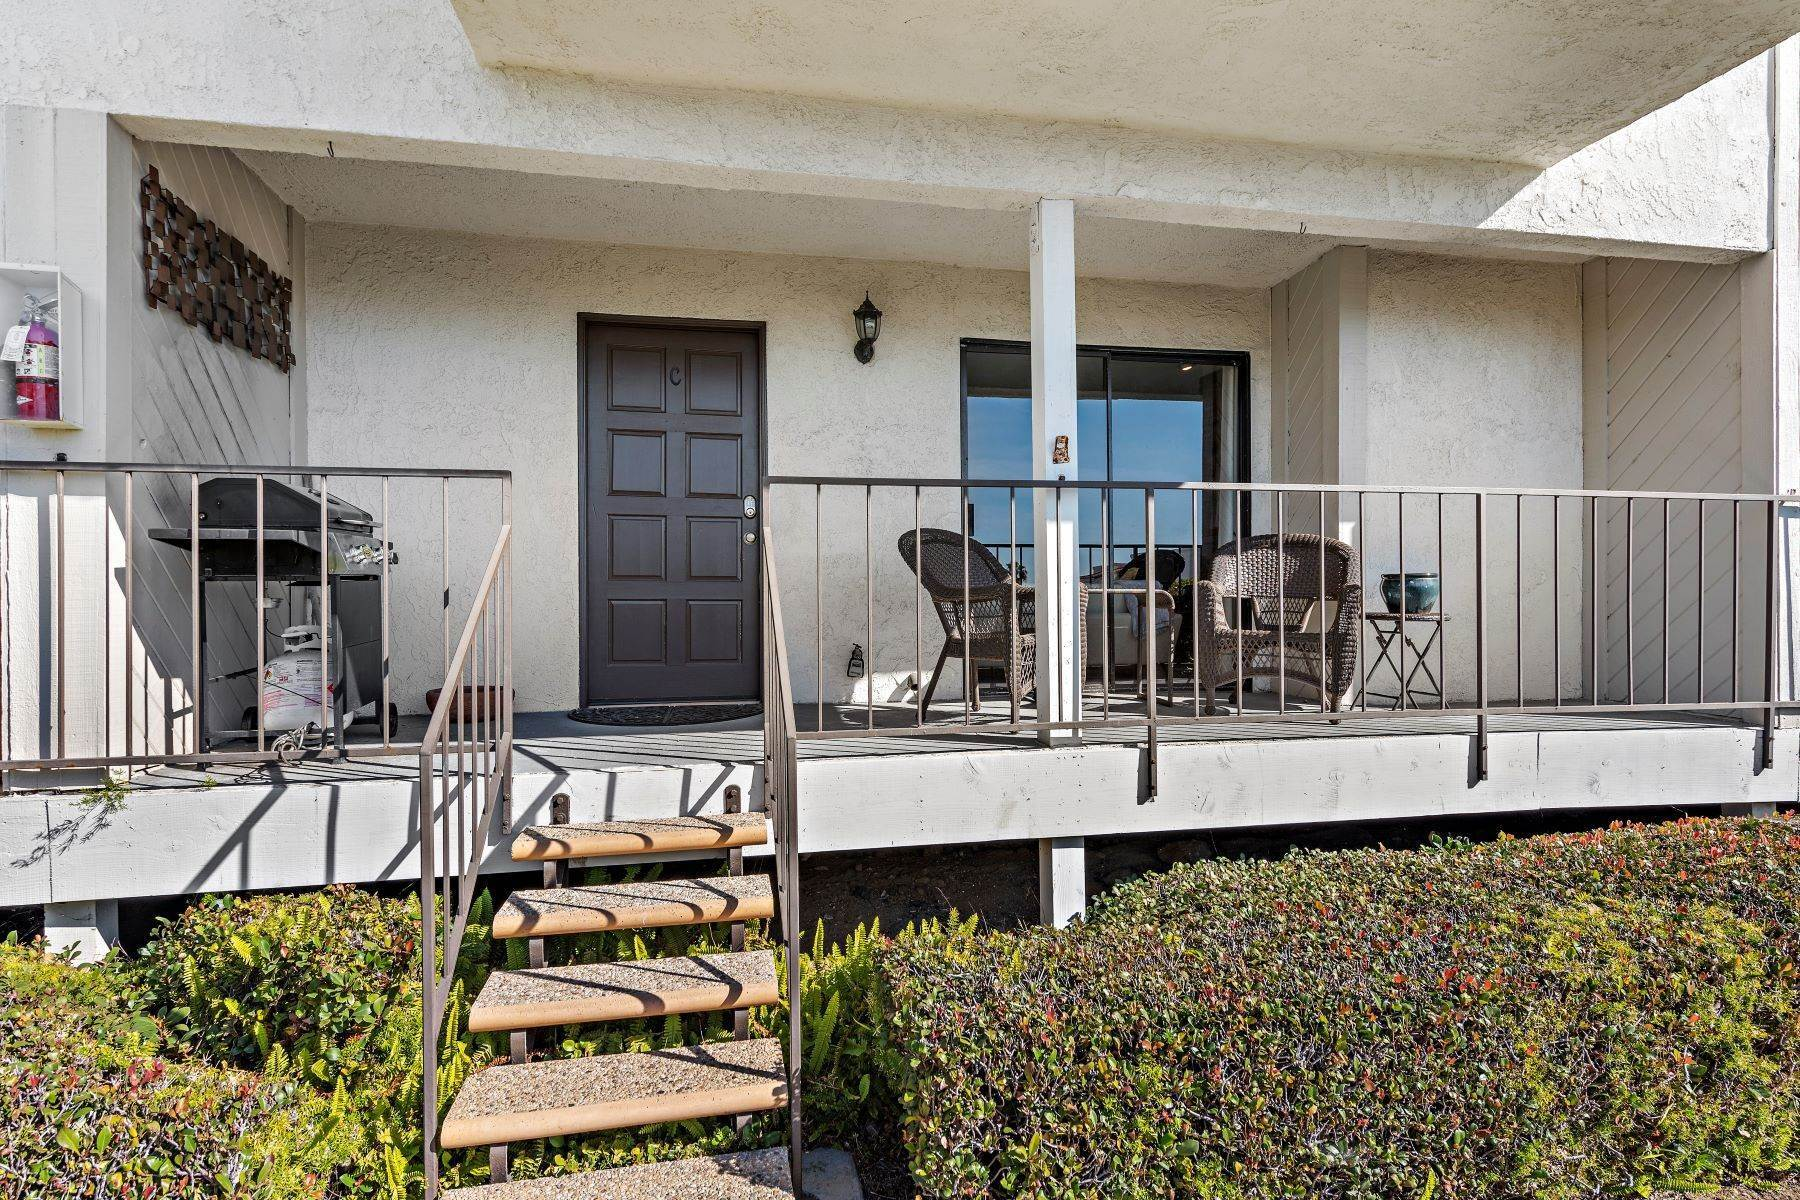 32. Condominiums for Sale at 321 Acebo Lane Unit #C, San Clemente, CA 92672 321 Acebo Lane, Unit #C San Clemente, California 92672 United States